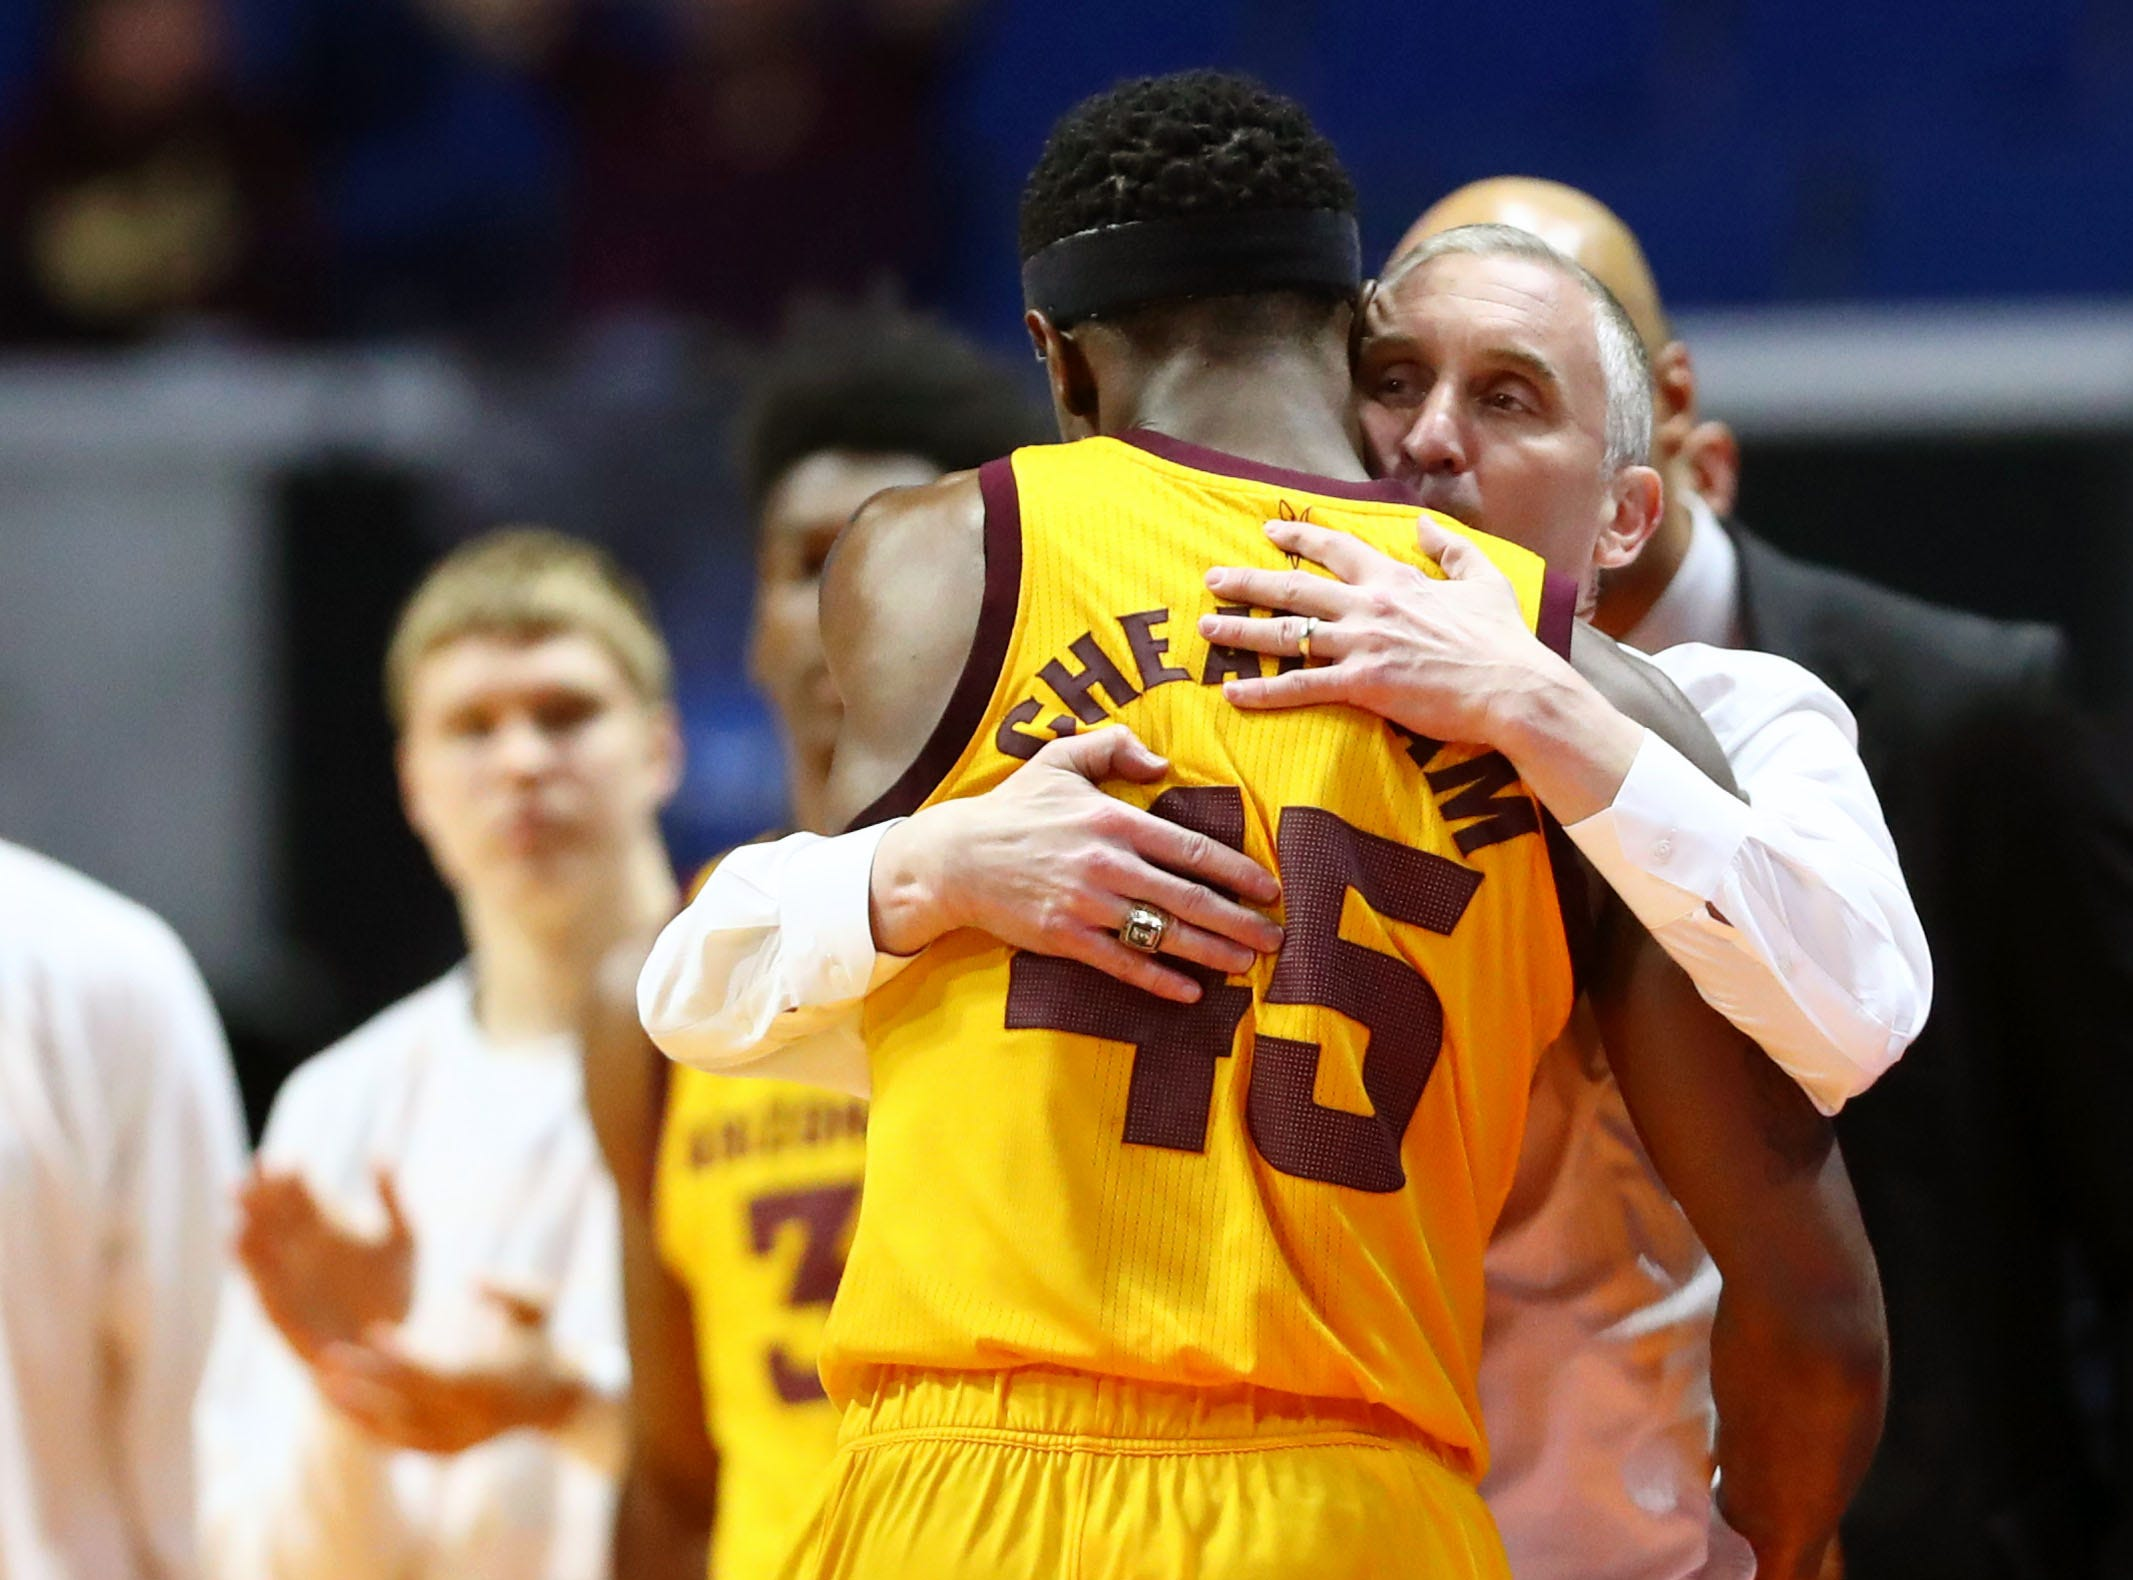 Mar 22, 2019; Tulsa, OK, USA; Arizona State Sun Devils head coach Bobby Hurley hugs forward Zylan Cheatham (45) in the final minutes of the game in their loss to Buffalo Bulls in the first round of the 2019 NCAA Tournament at BOK Center. The Buffalo Bulls won 91-74. Mandatory Credit: Mark J. Rebilas-USA TODAY Sports